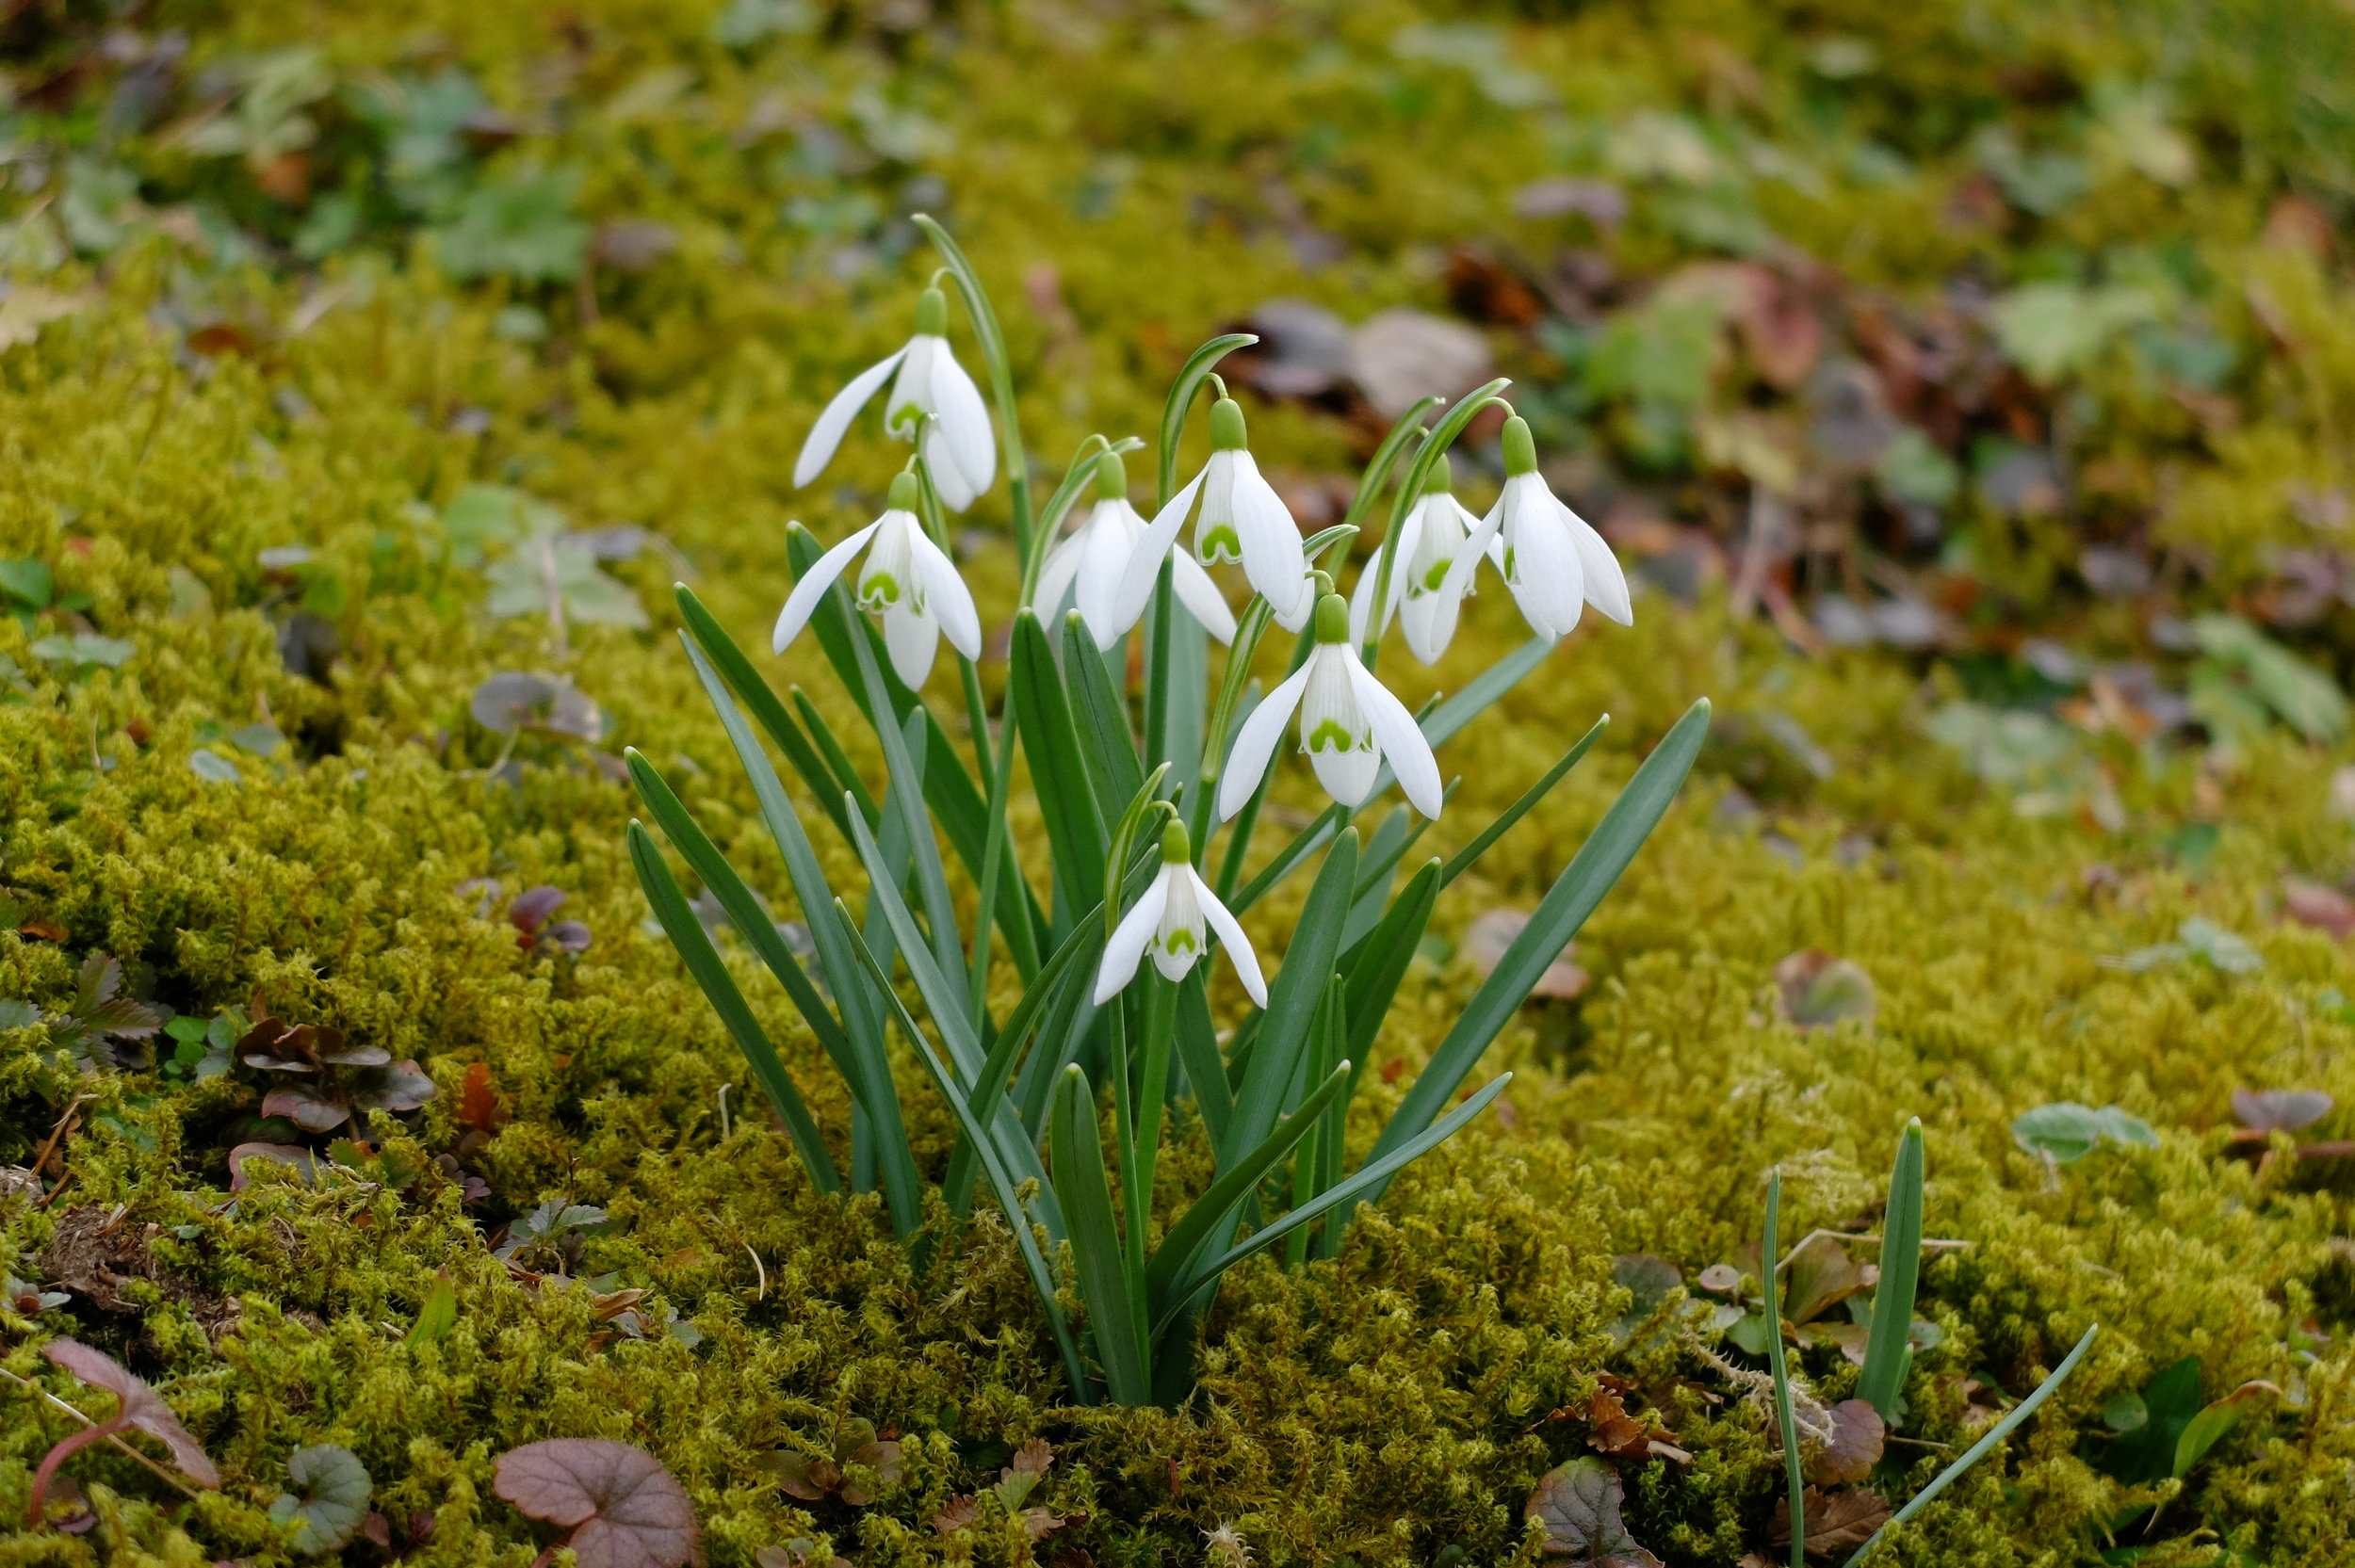 The snow drop flower is seen all over Germany and typically blooms before Spring begins.